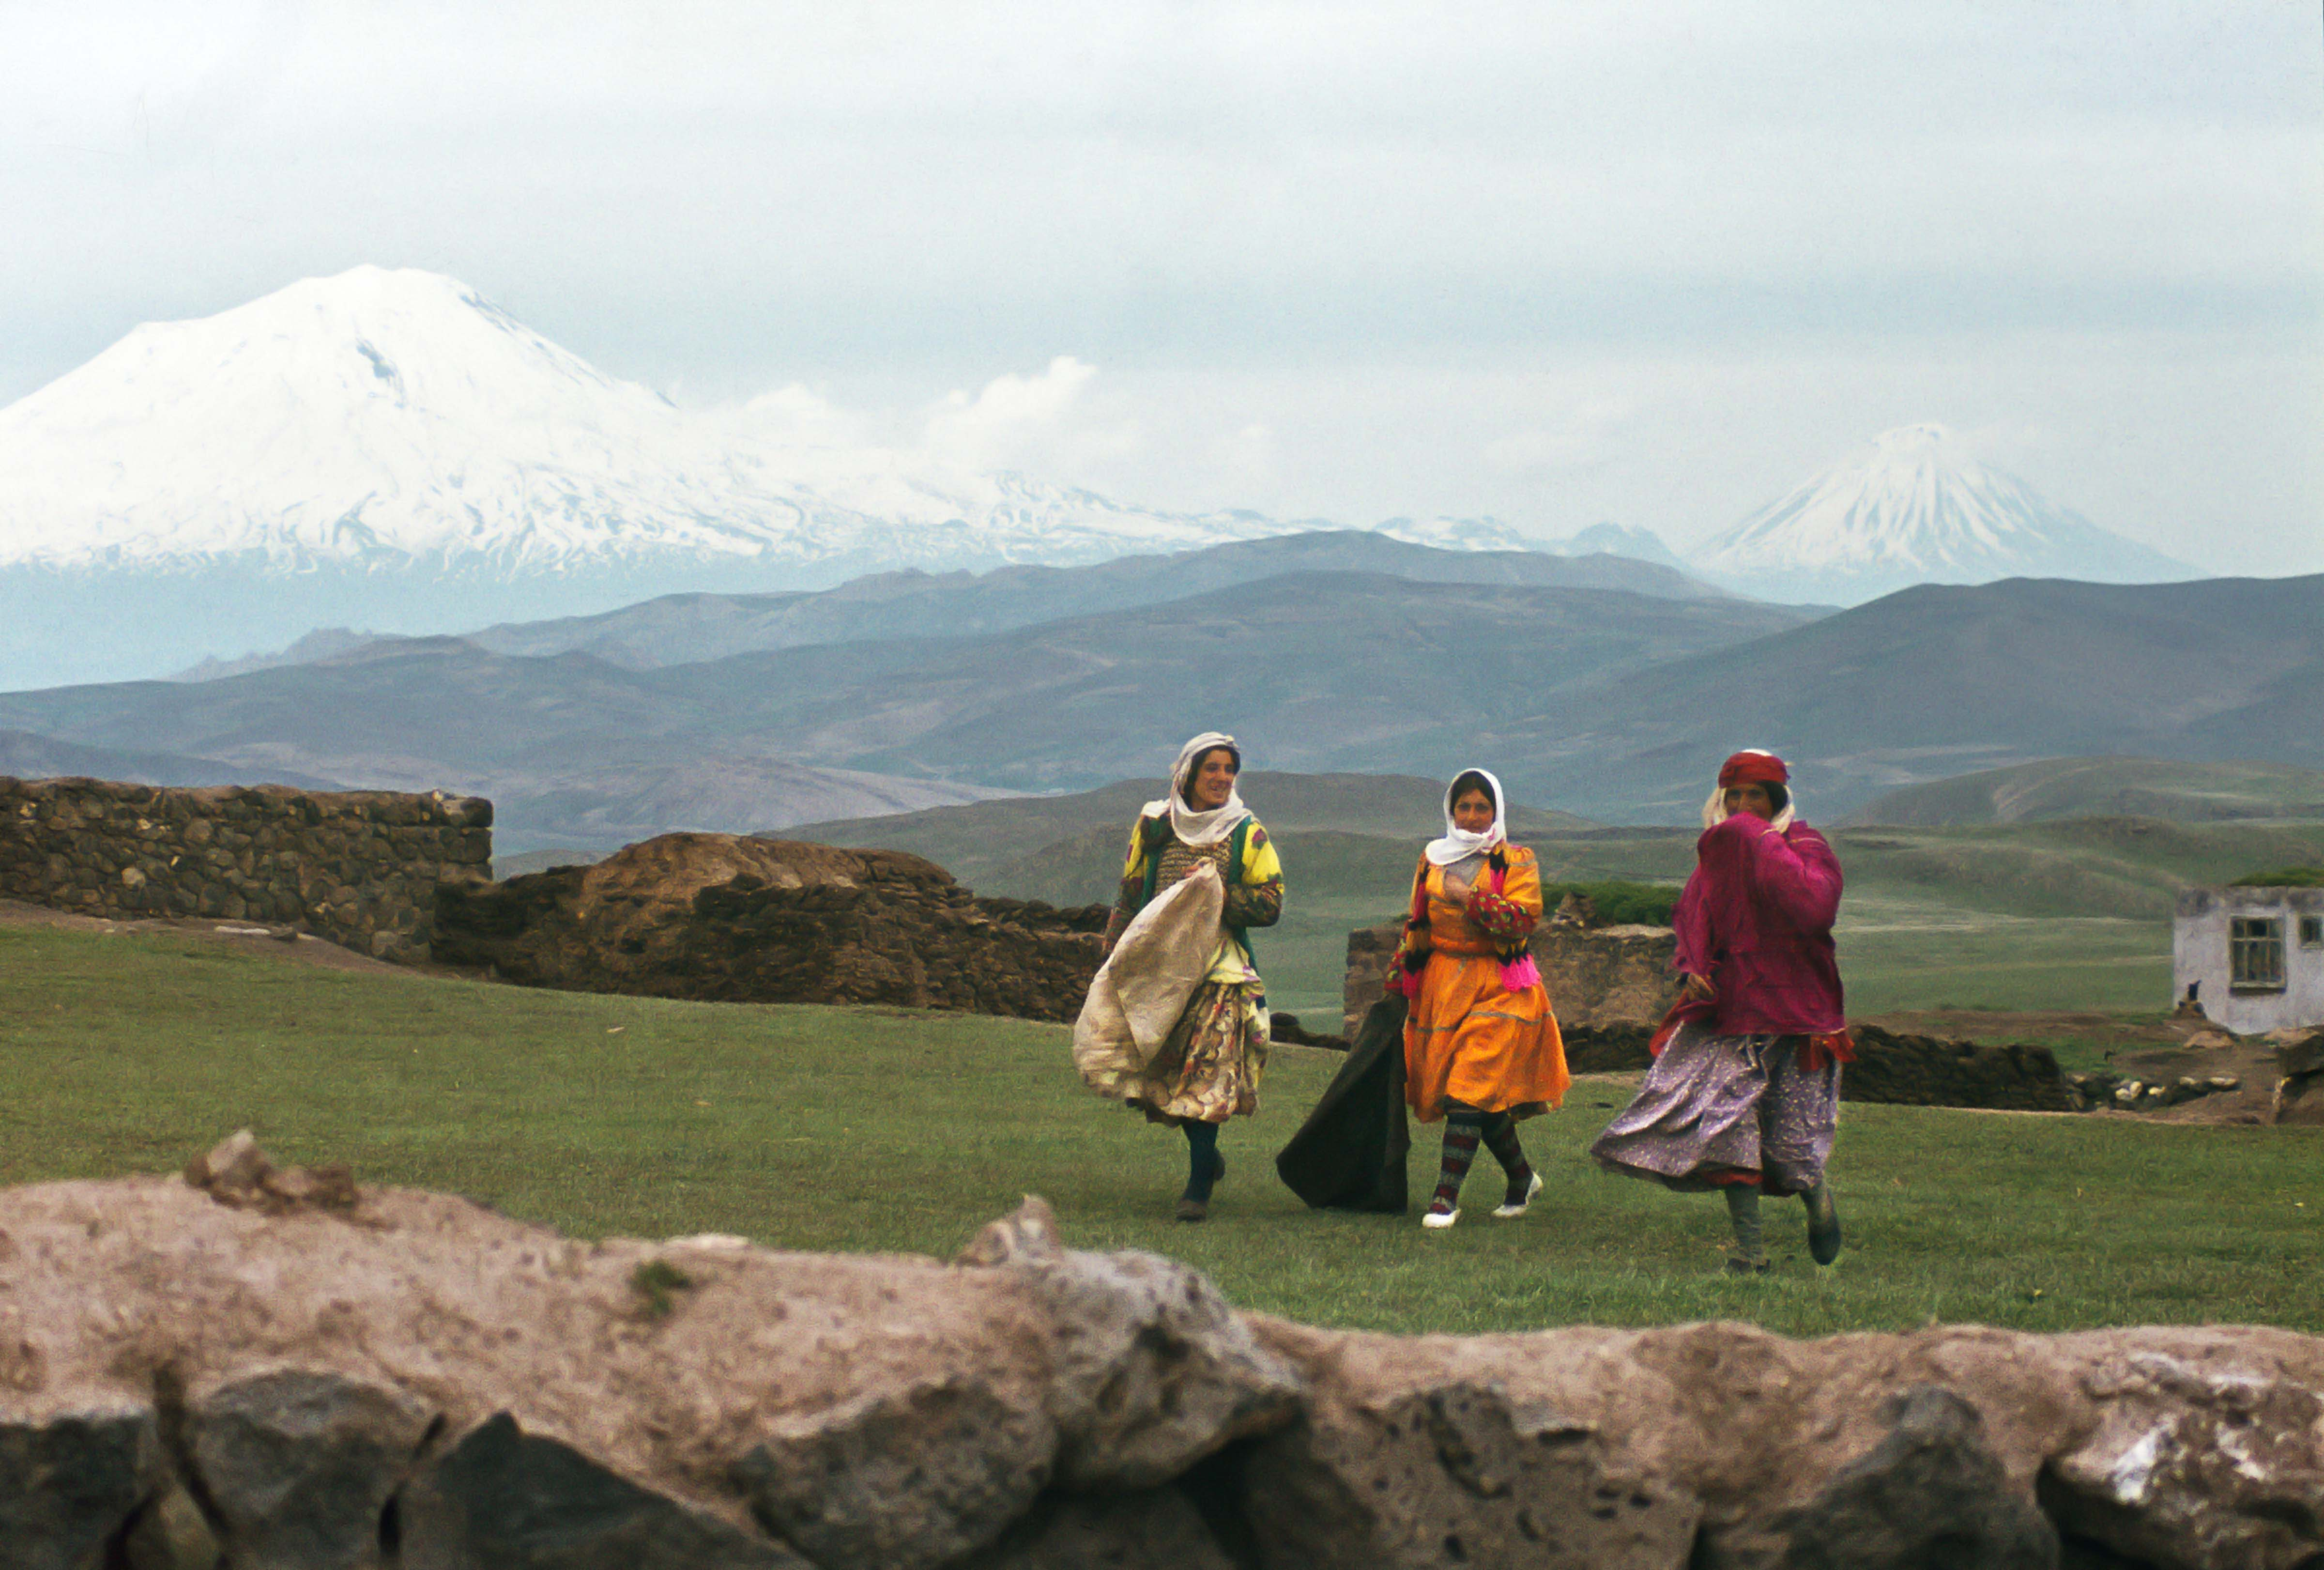 Mount Ararat and Three Kurdish Women